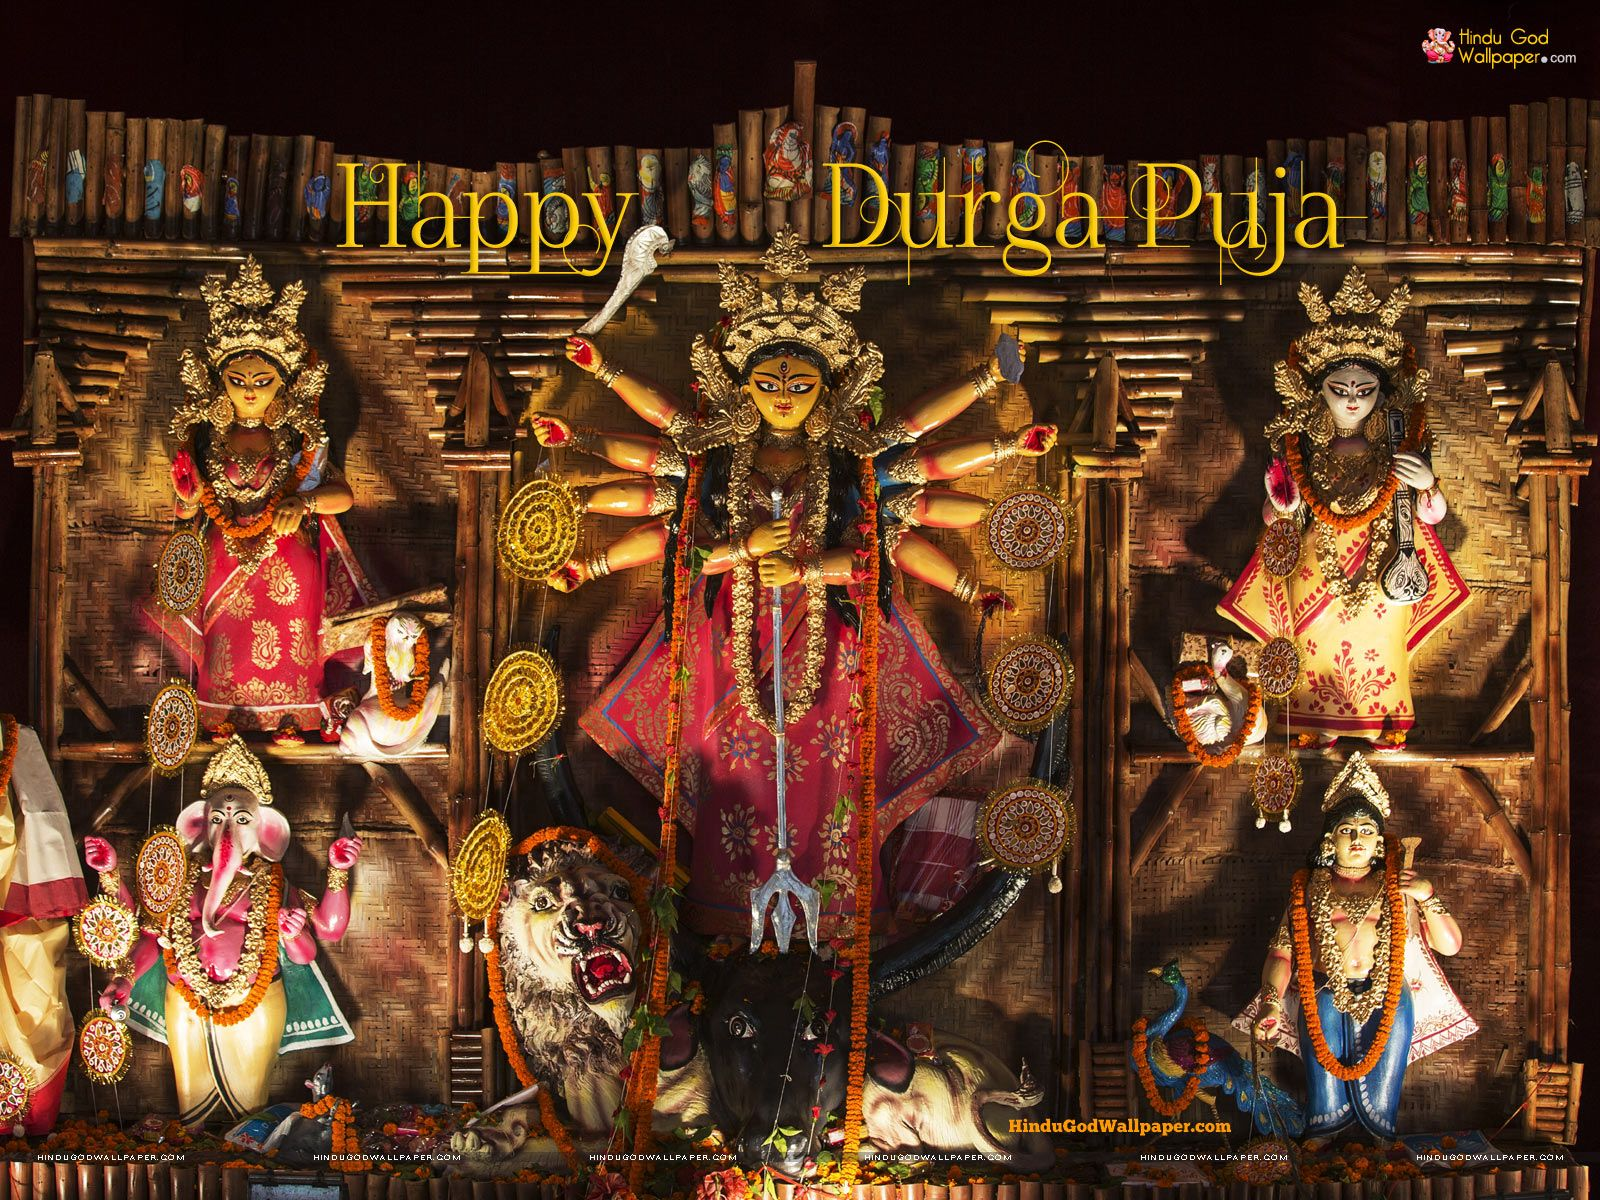 Durga puja wallpaper full size hd free download durga puja durga puja wallpaper full size hd free download altavistaventures Image collections